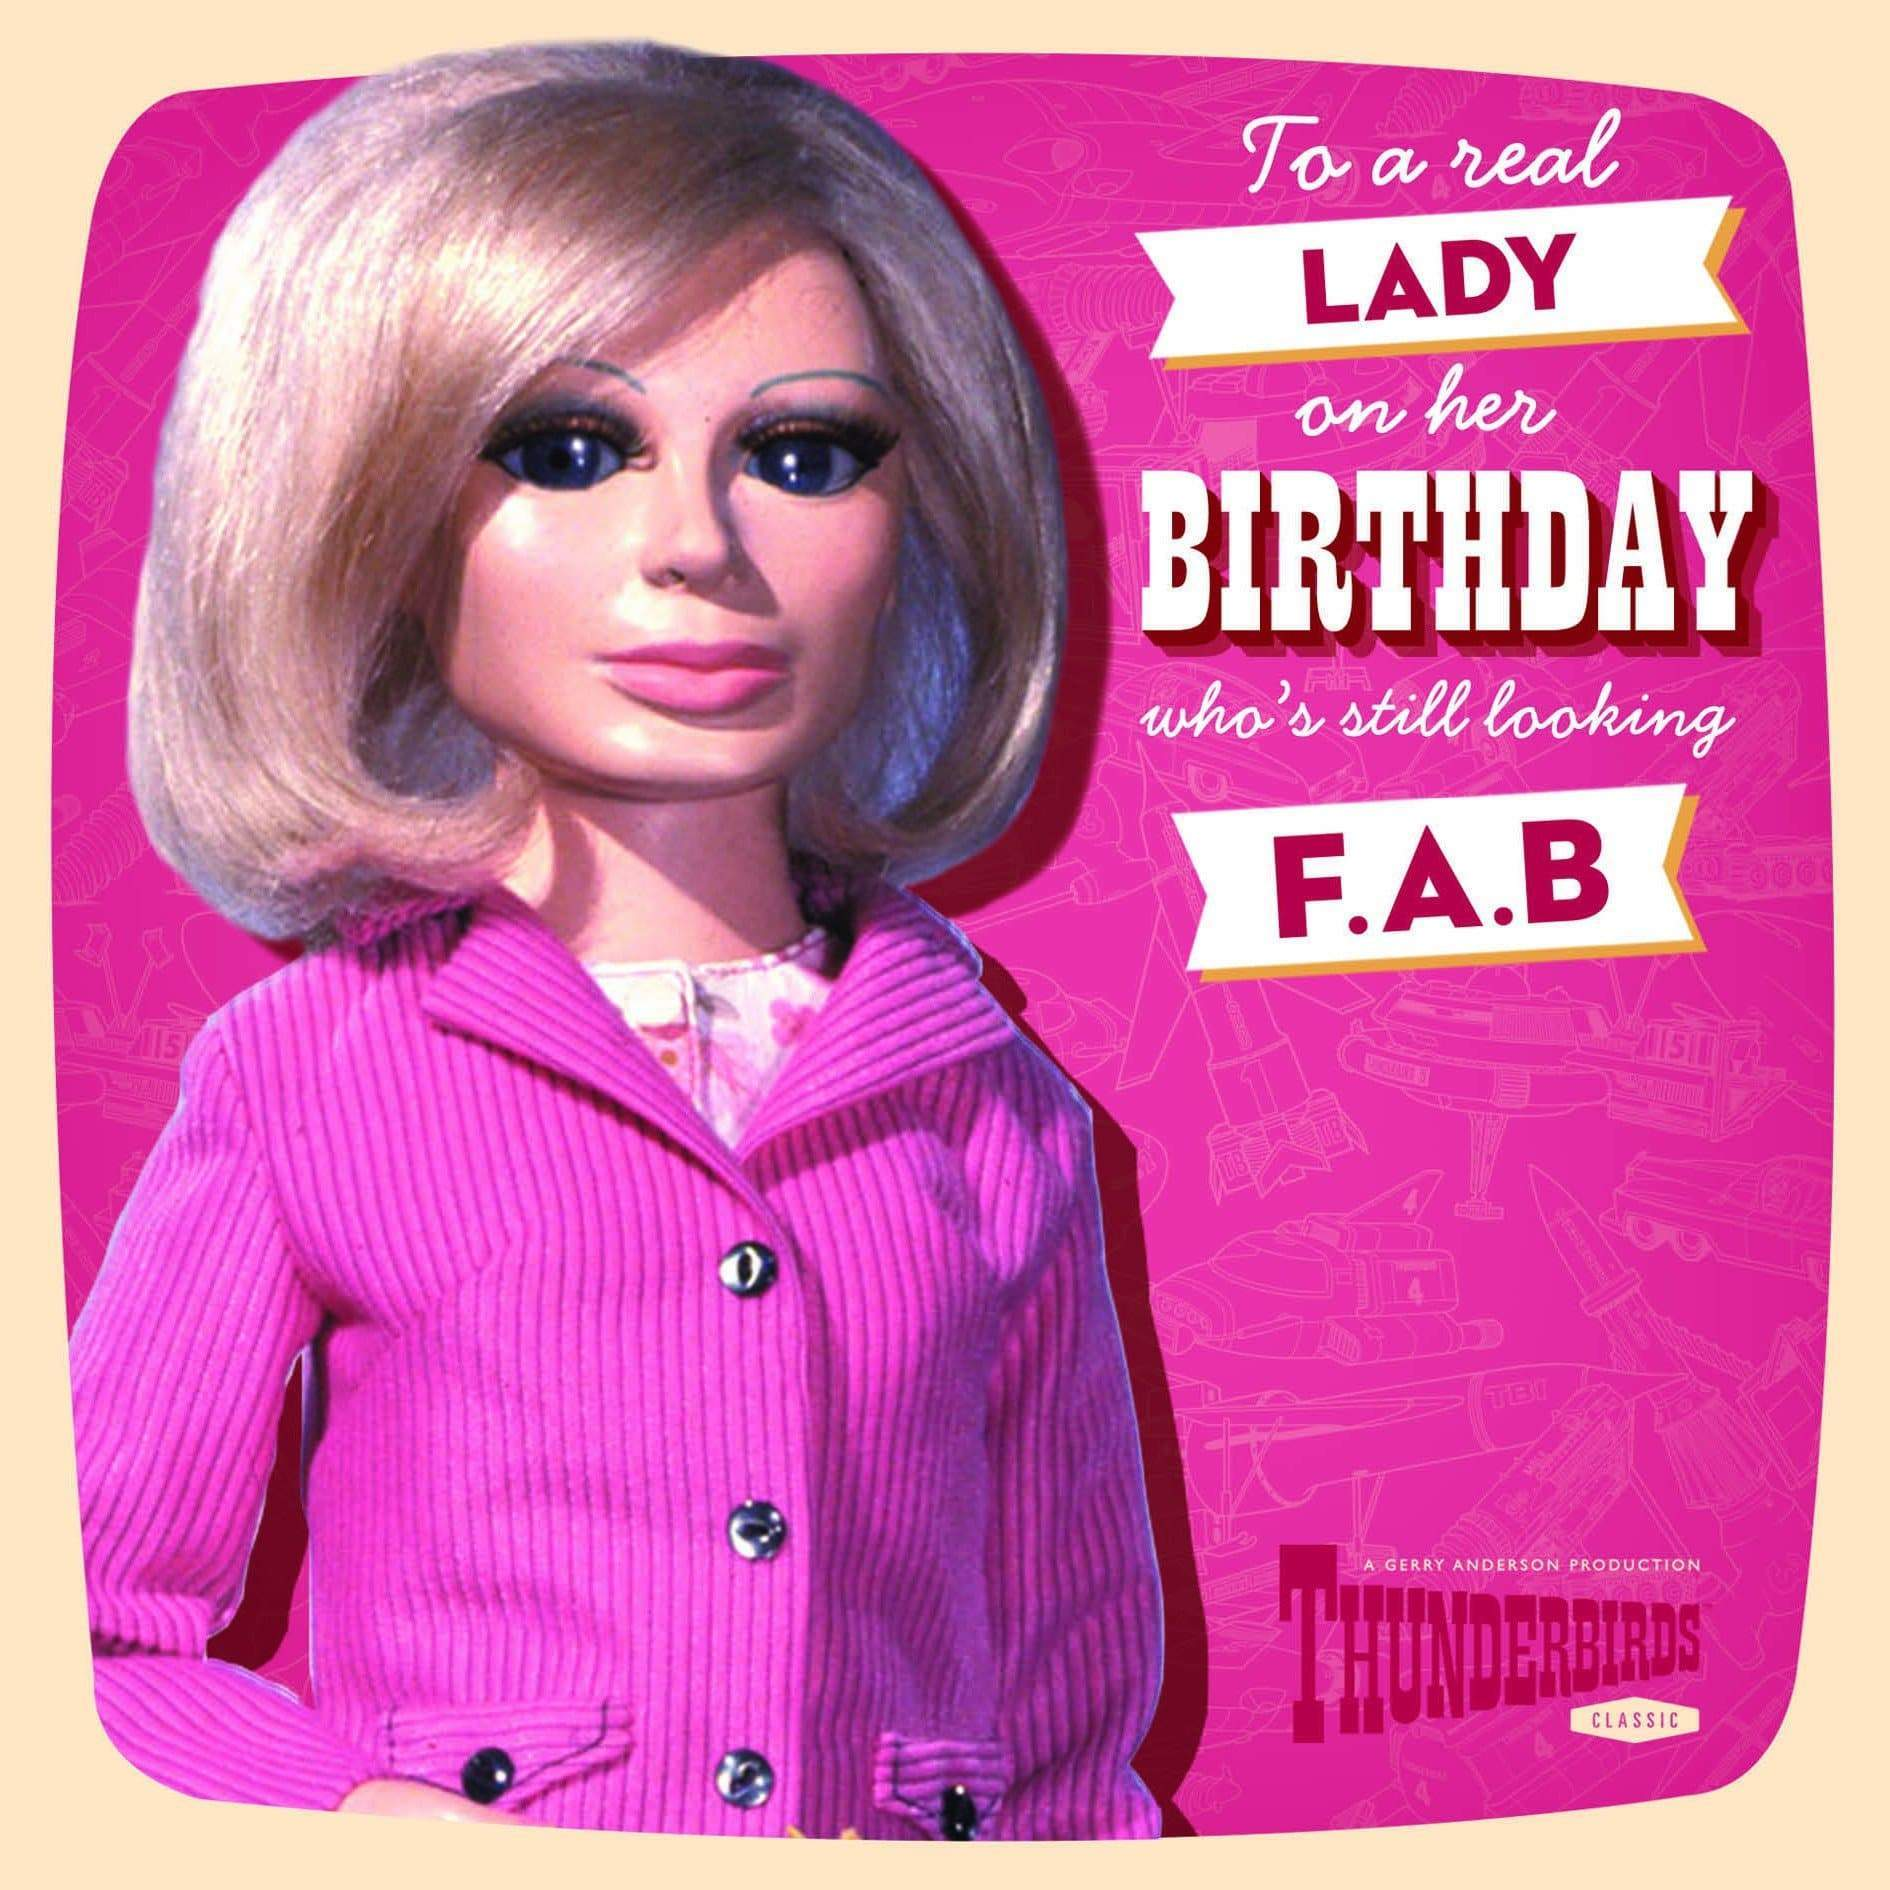 Thunderbirds Lady Penelope Birthday Card - The Gerry Anderson Store